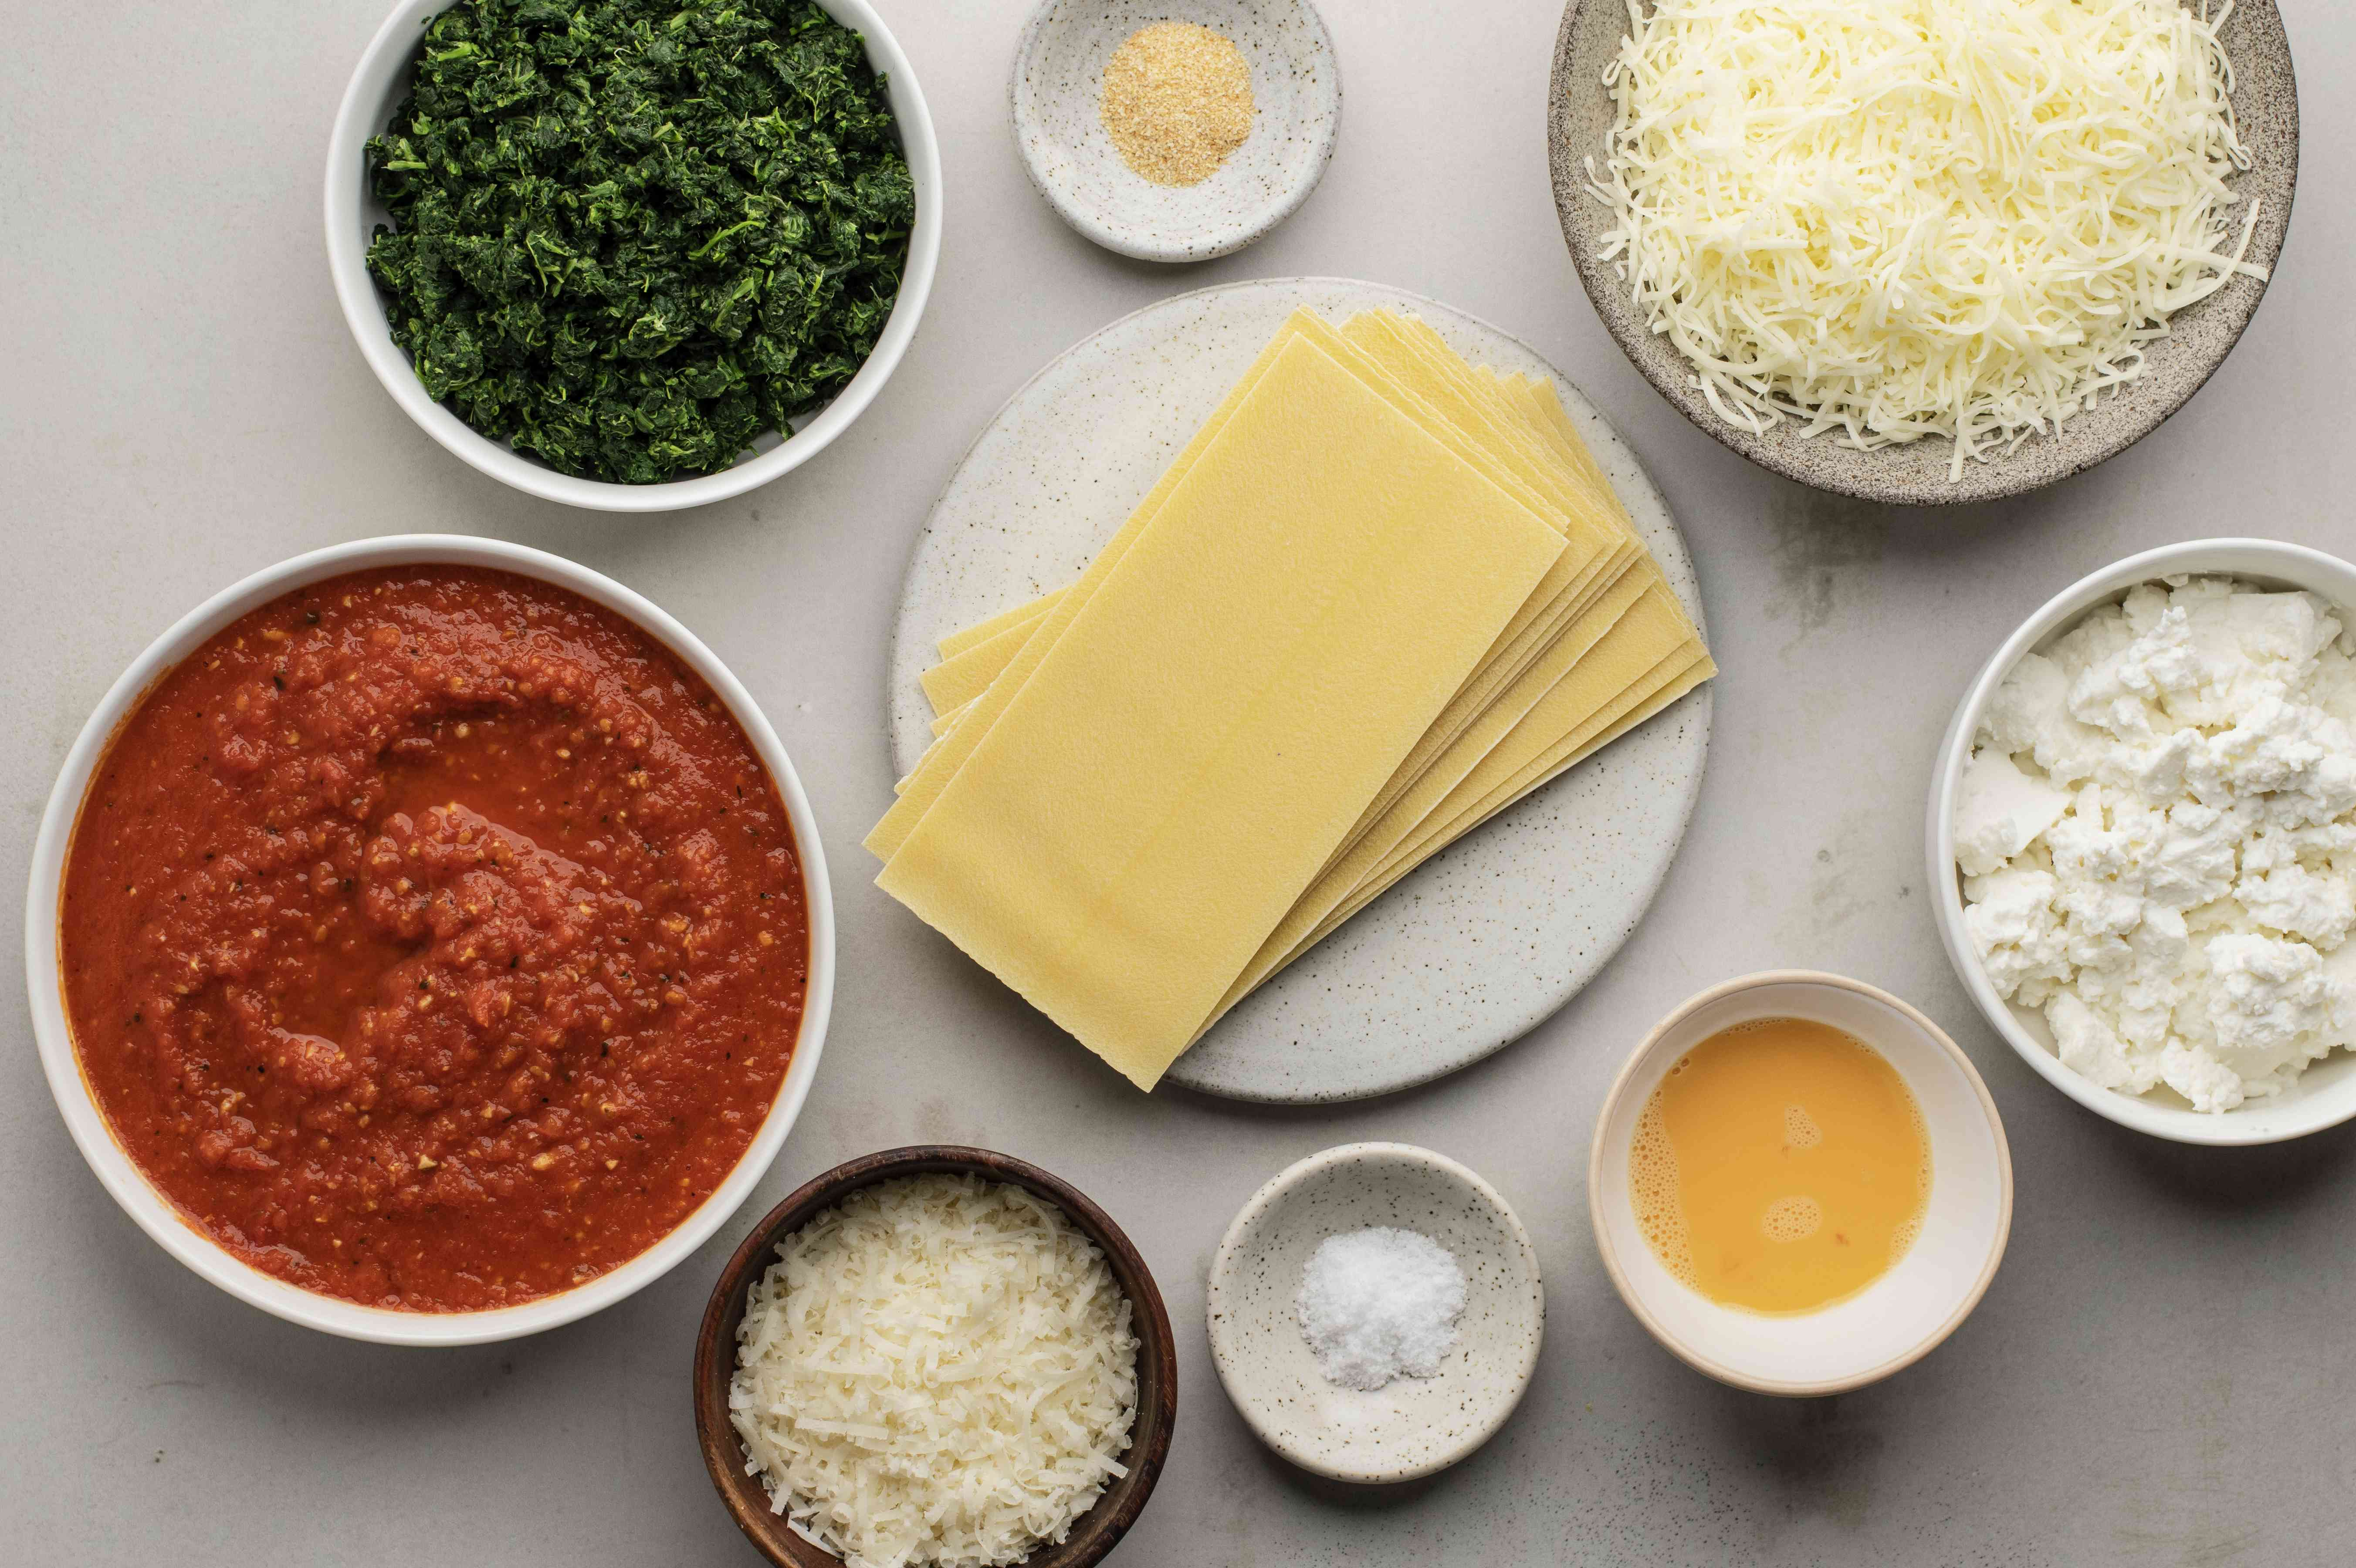 Ingredients for perfect spinach lasagna